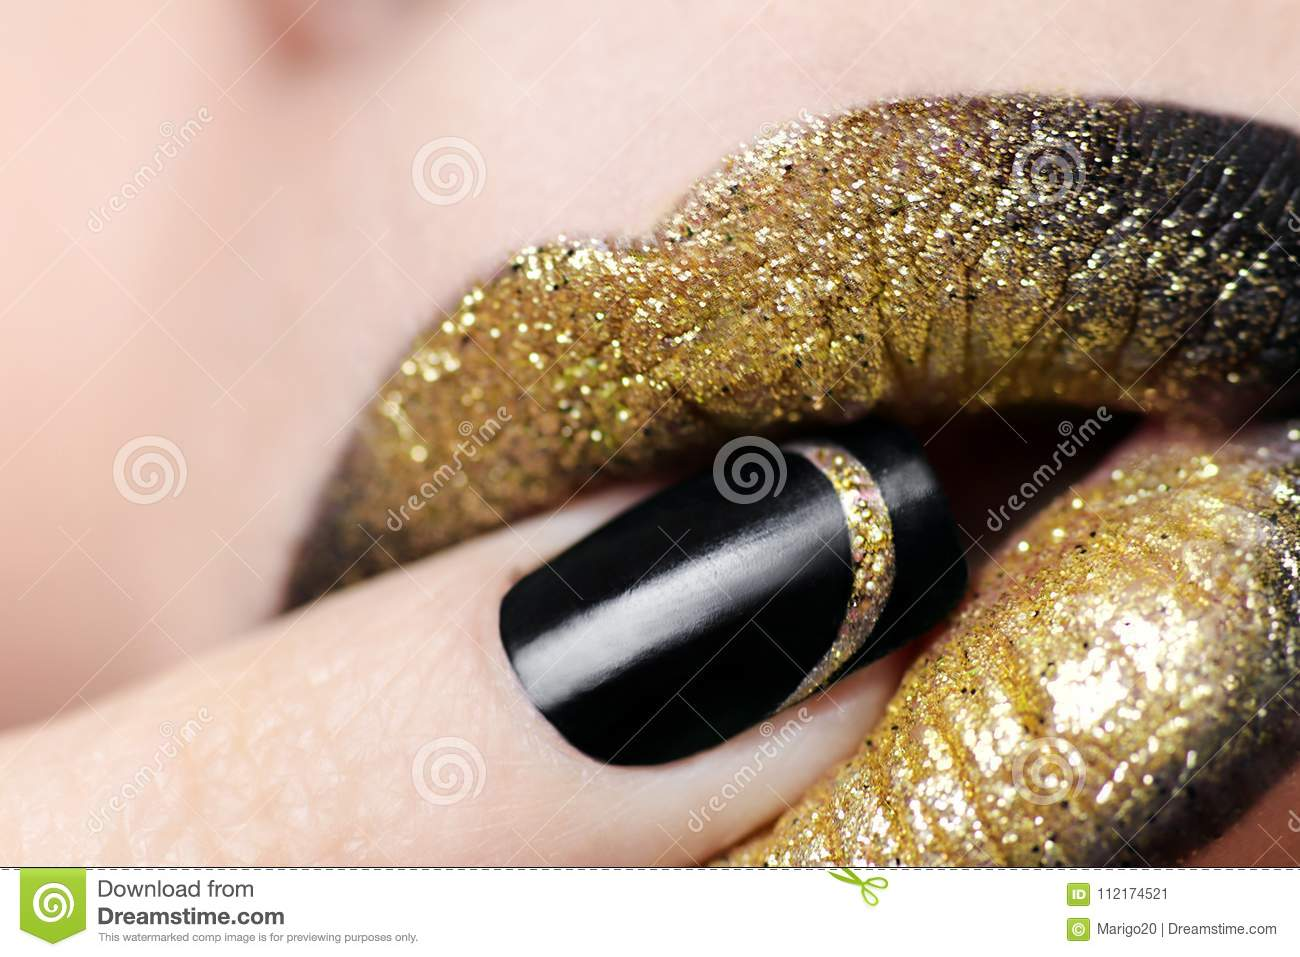 Lip makeup from Golden and black lipstick